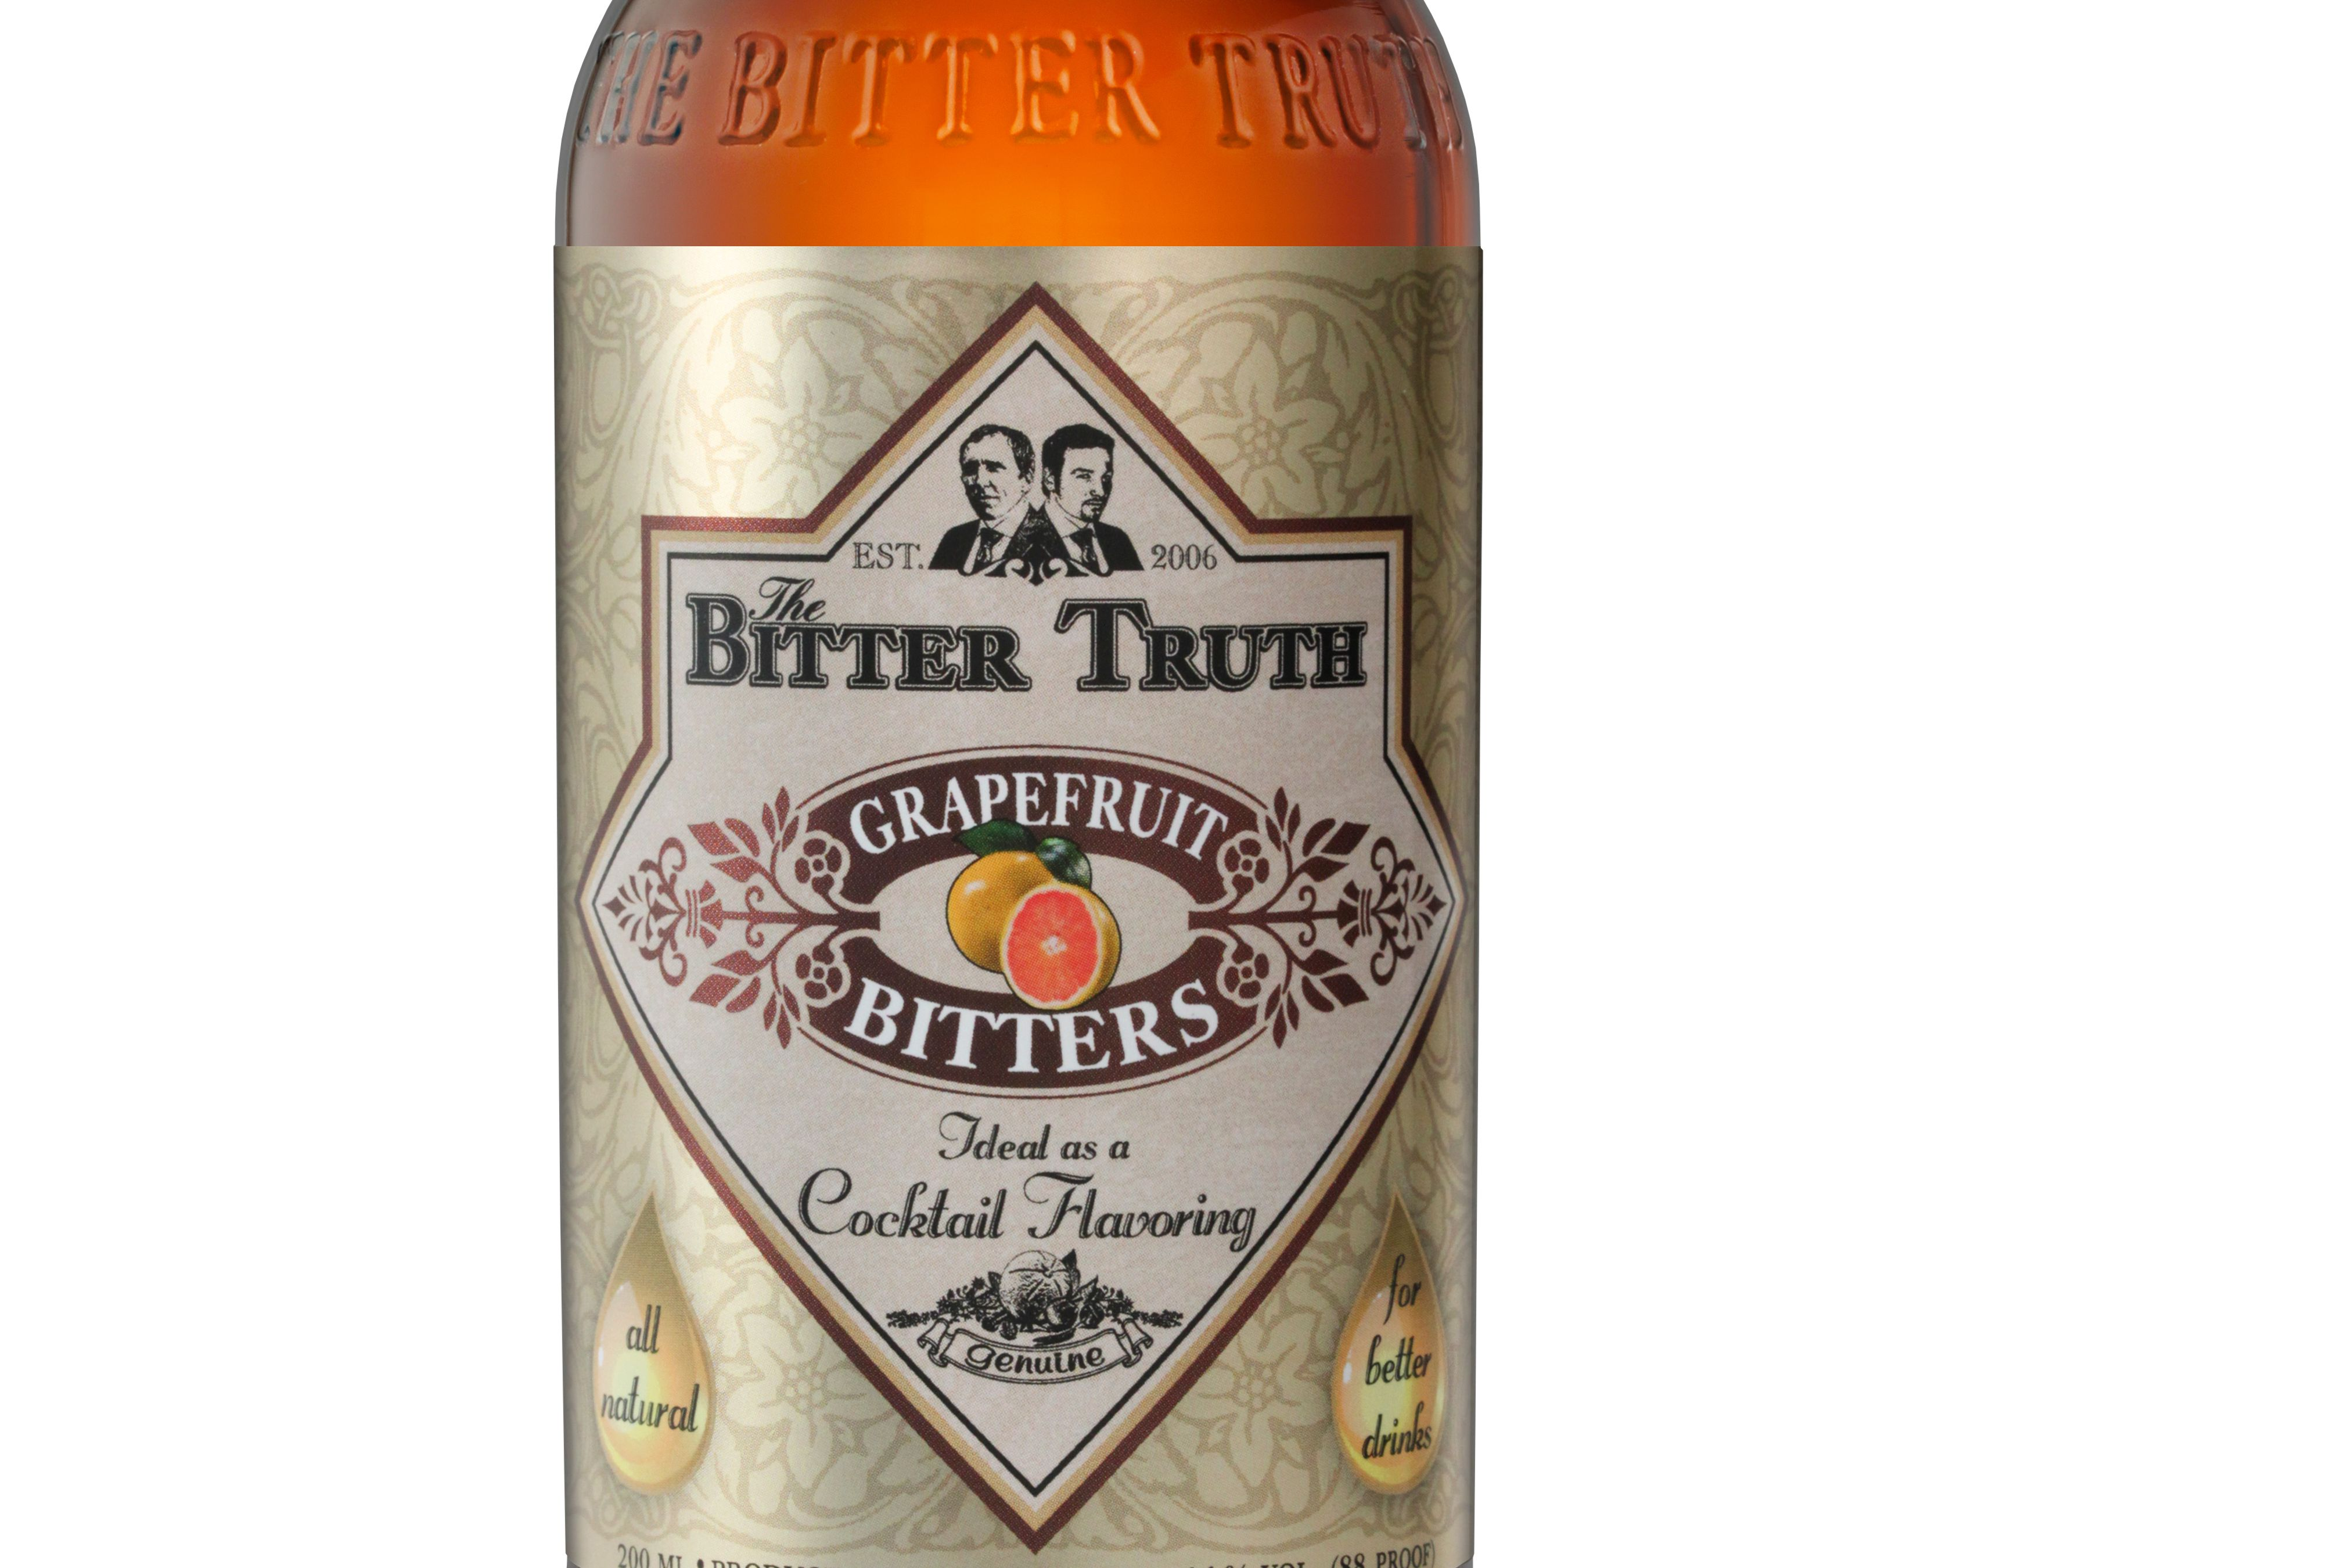 A bottle of The Bitter Truth Grapefruit Bitters